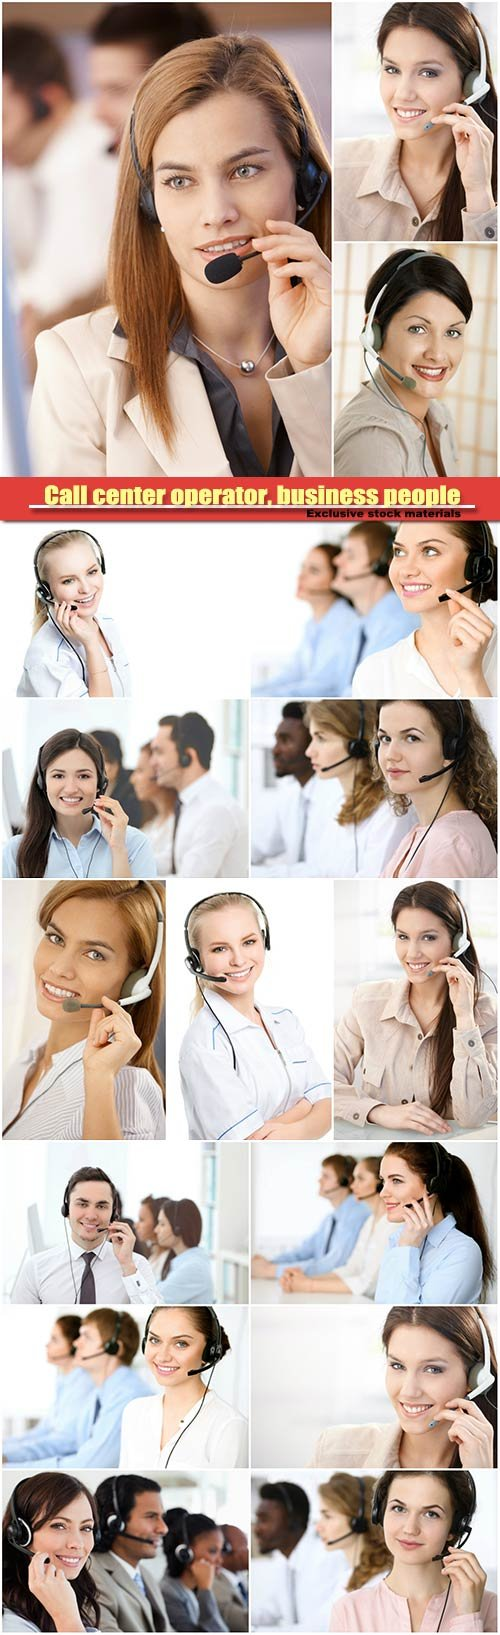 Call center operator, business people